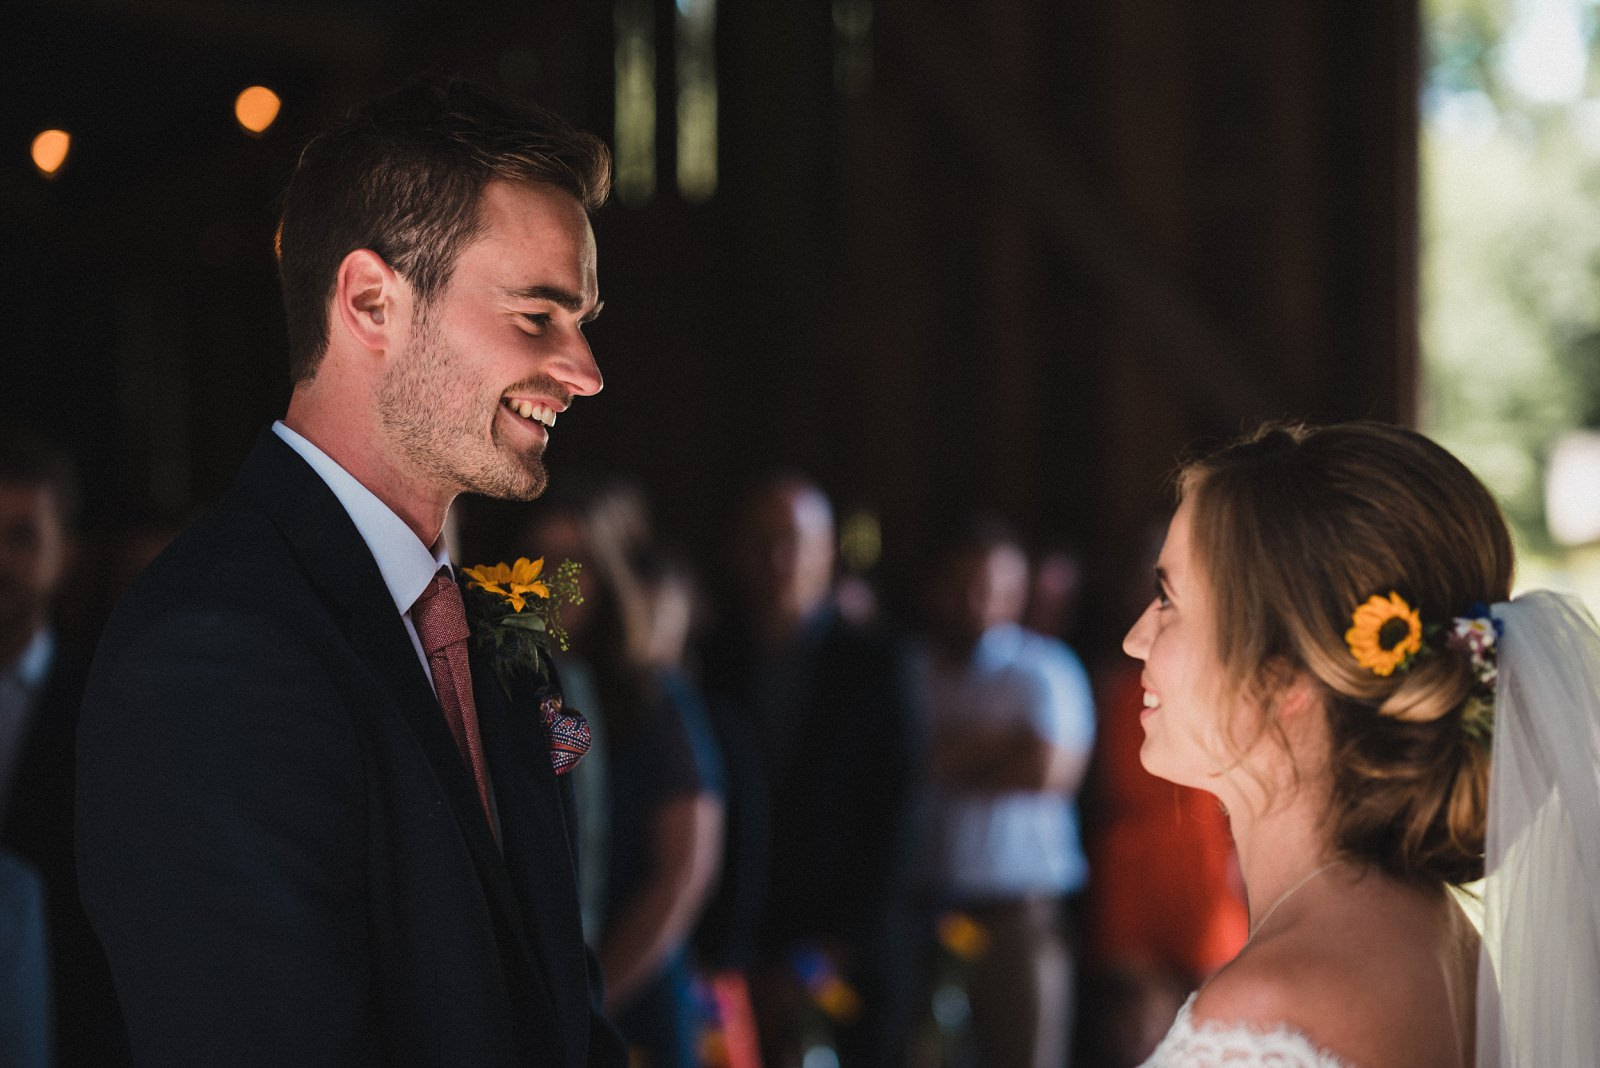 The groom smiling at his bride during the wedding vows at Nancarrow Farm's Rusty Barn